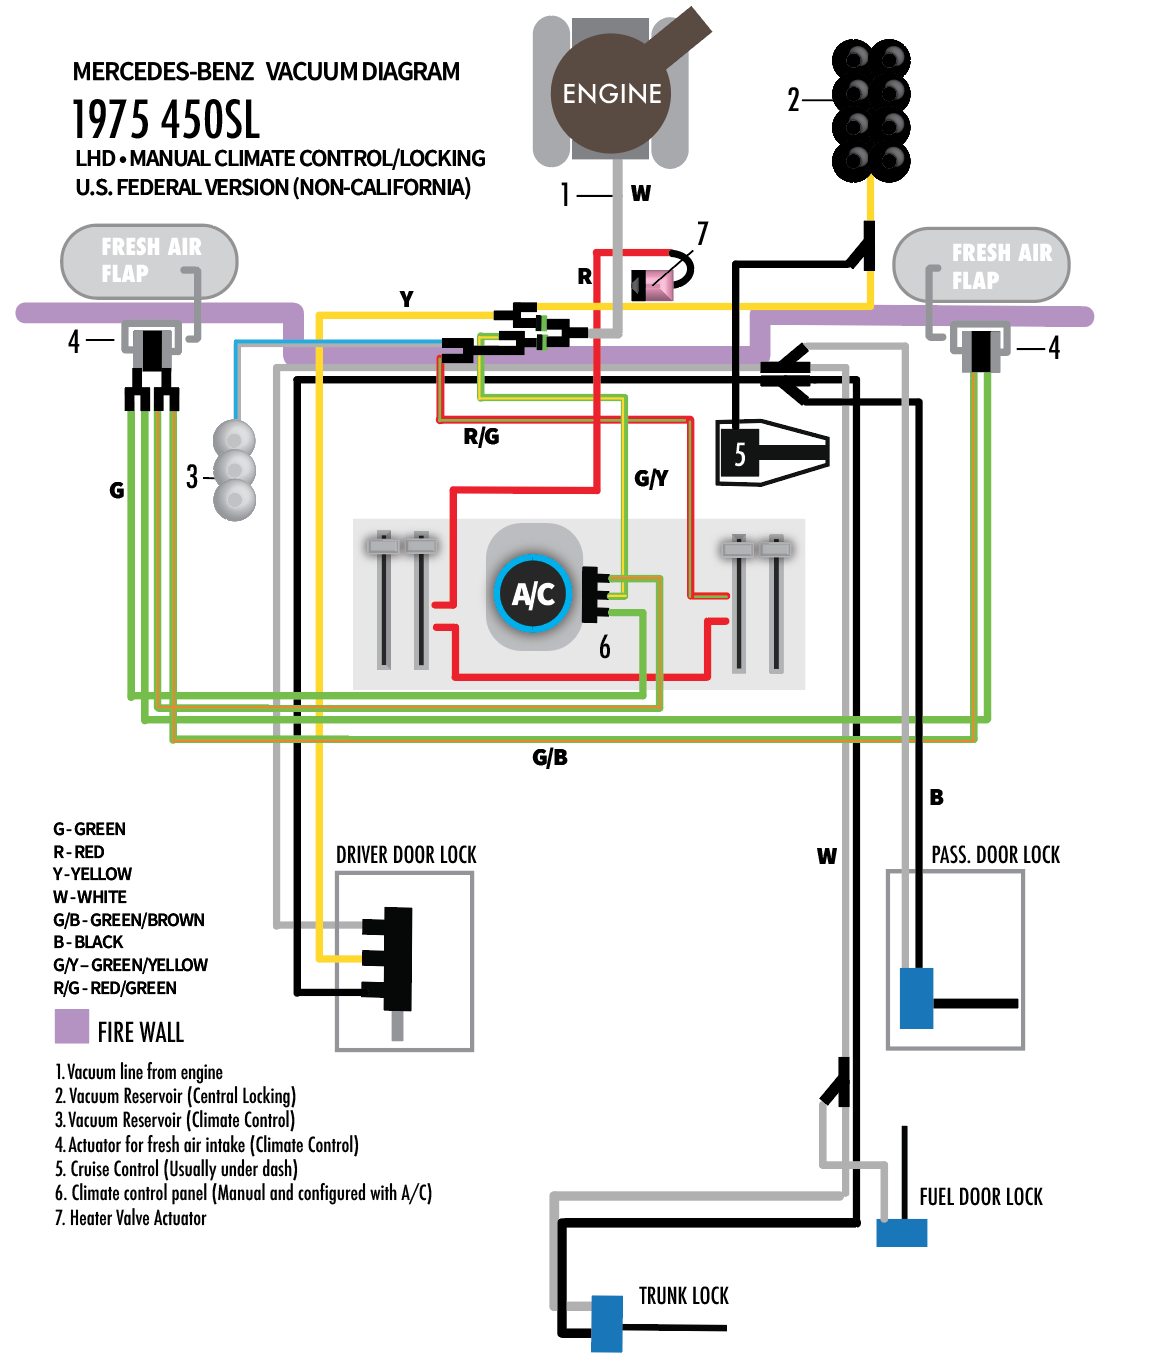 2010 Mercedes Sprinter Wiring Diagram Library 2001 S500 Fuse Box Benz W123 And R107 Diy Vacuum Color Codes